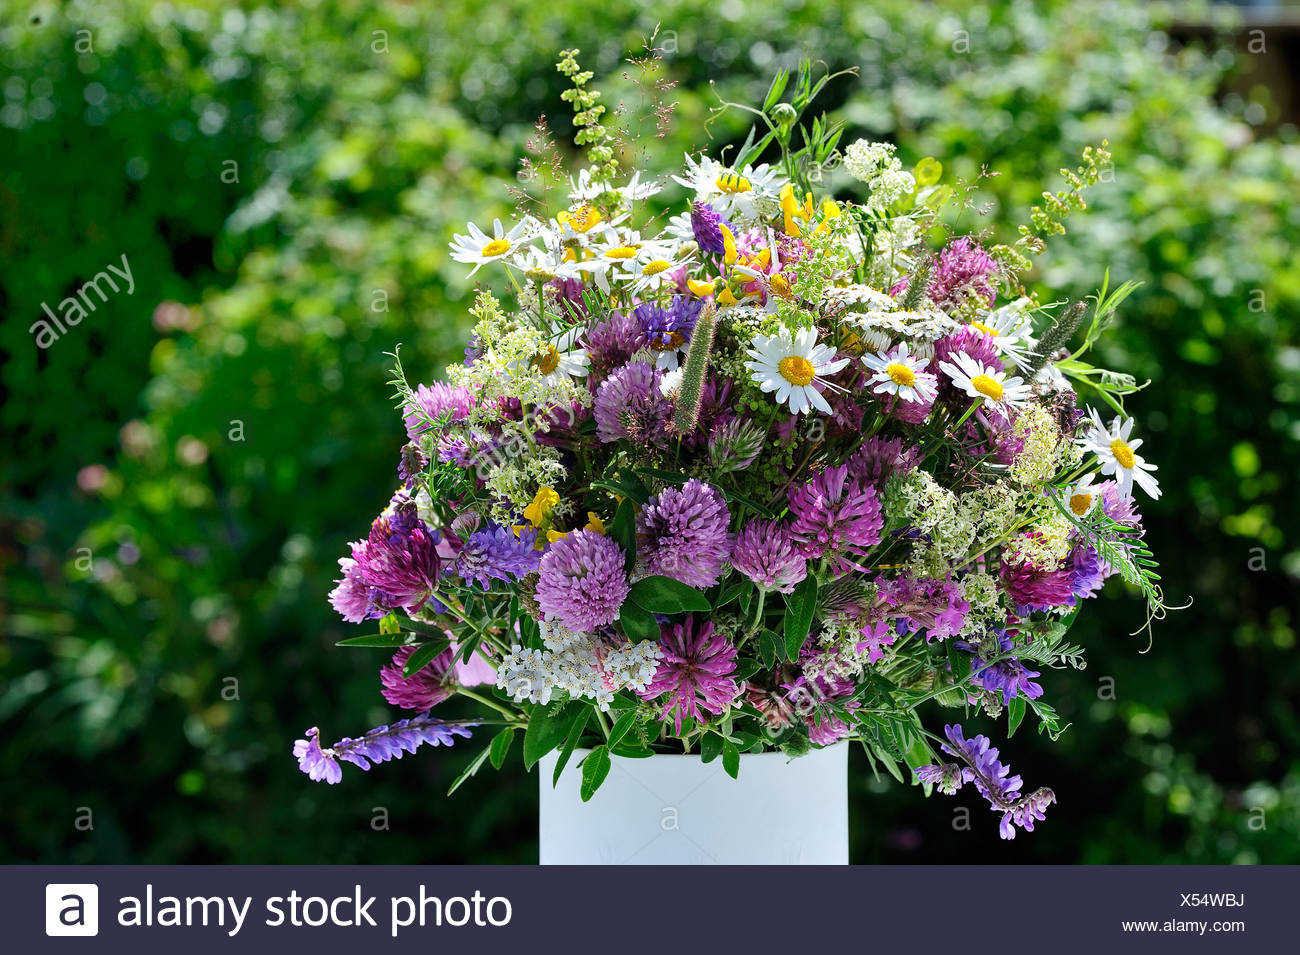 Close-up of flower bouquet against trees - Stock Image